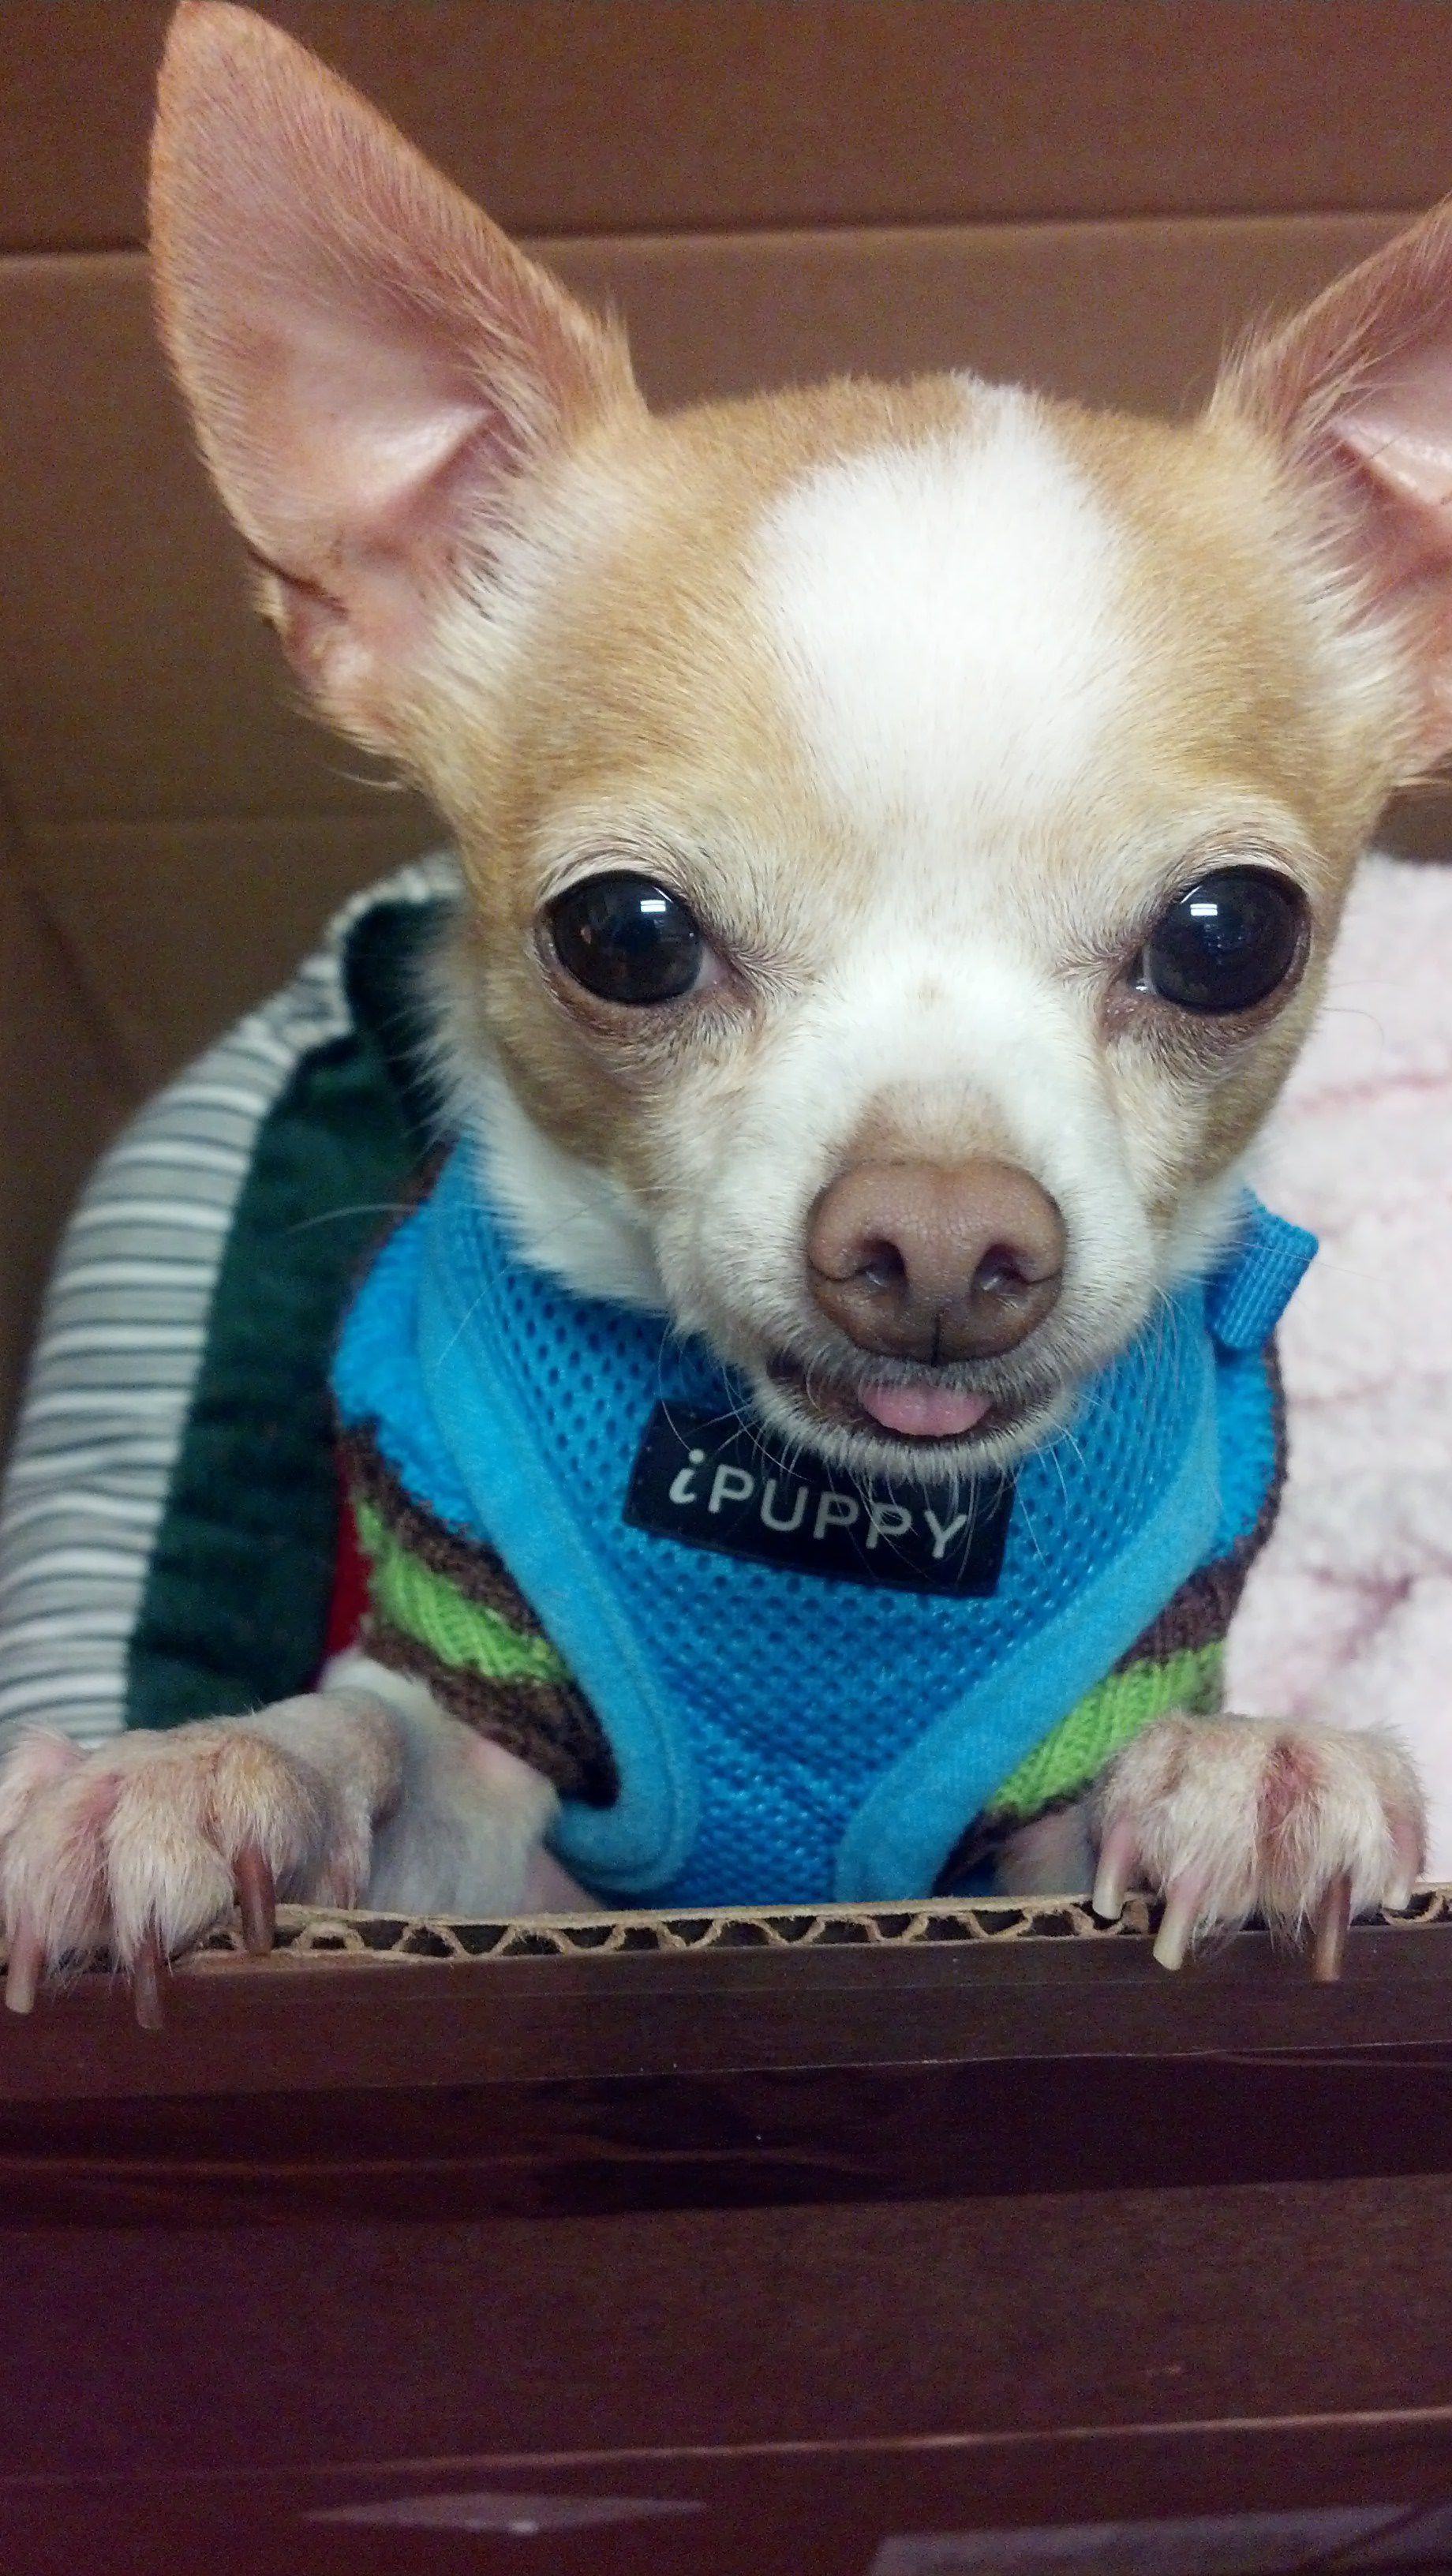 Puppy Pal Puppies Baby Chihuahua Cute Animals